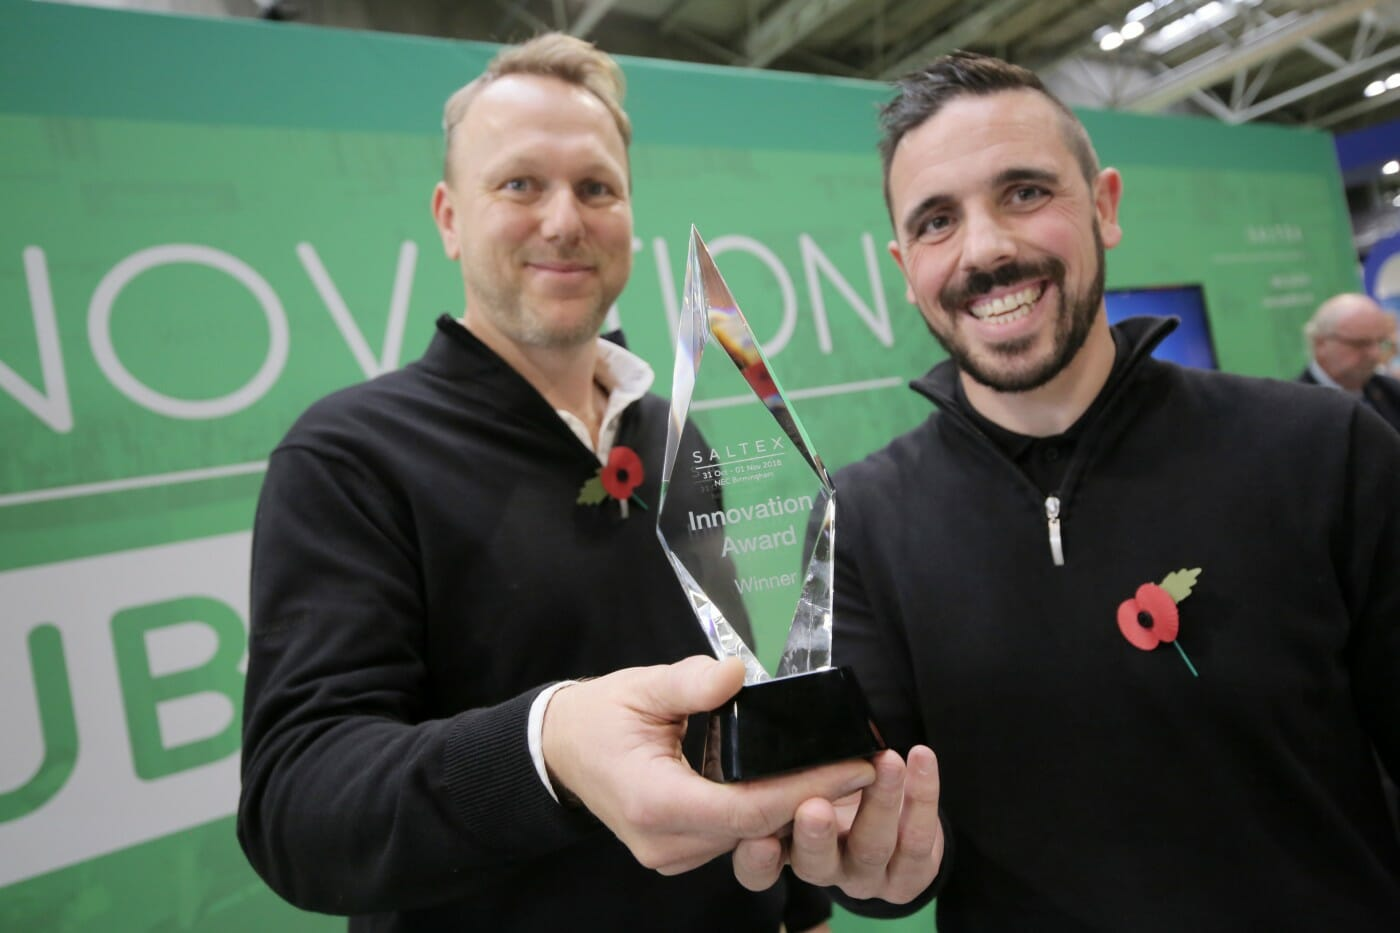 SALTEX Innovation Award 2018